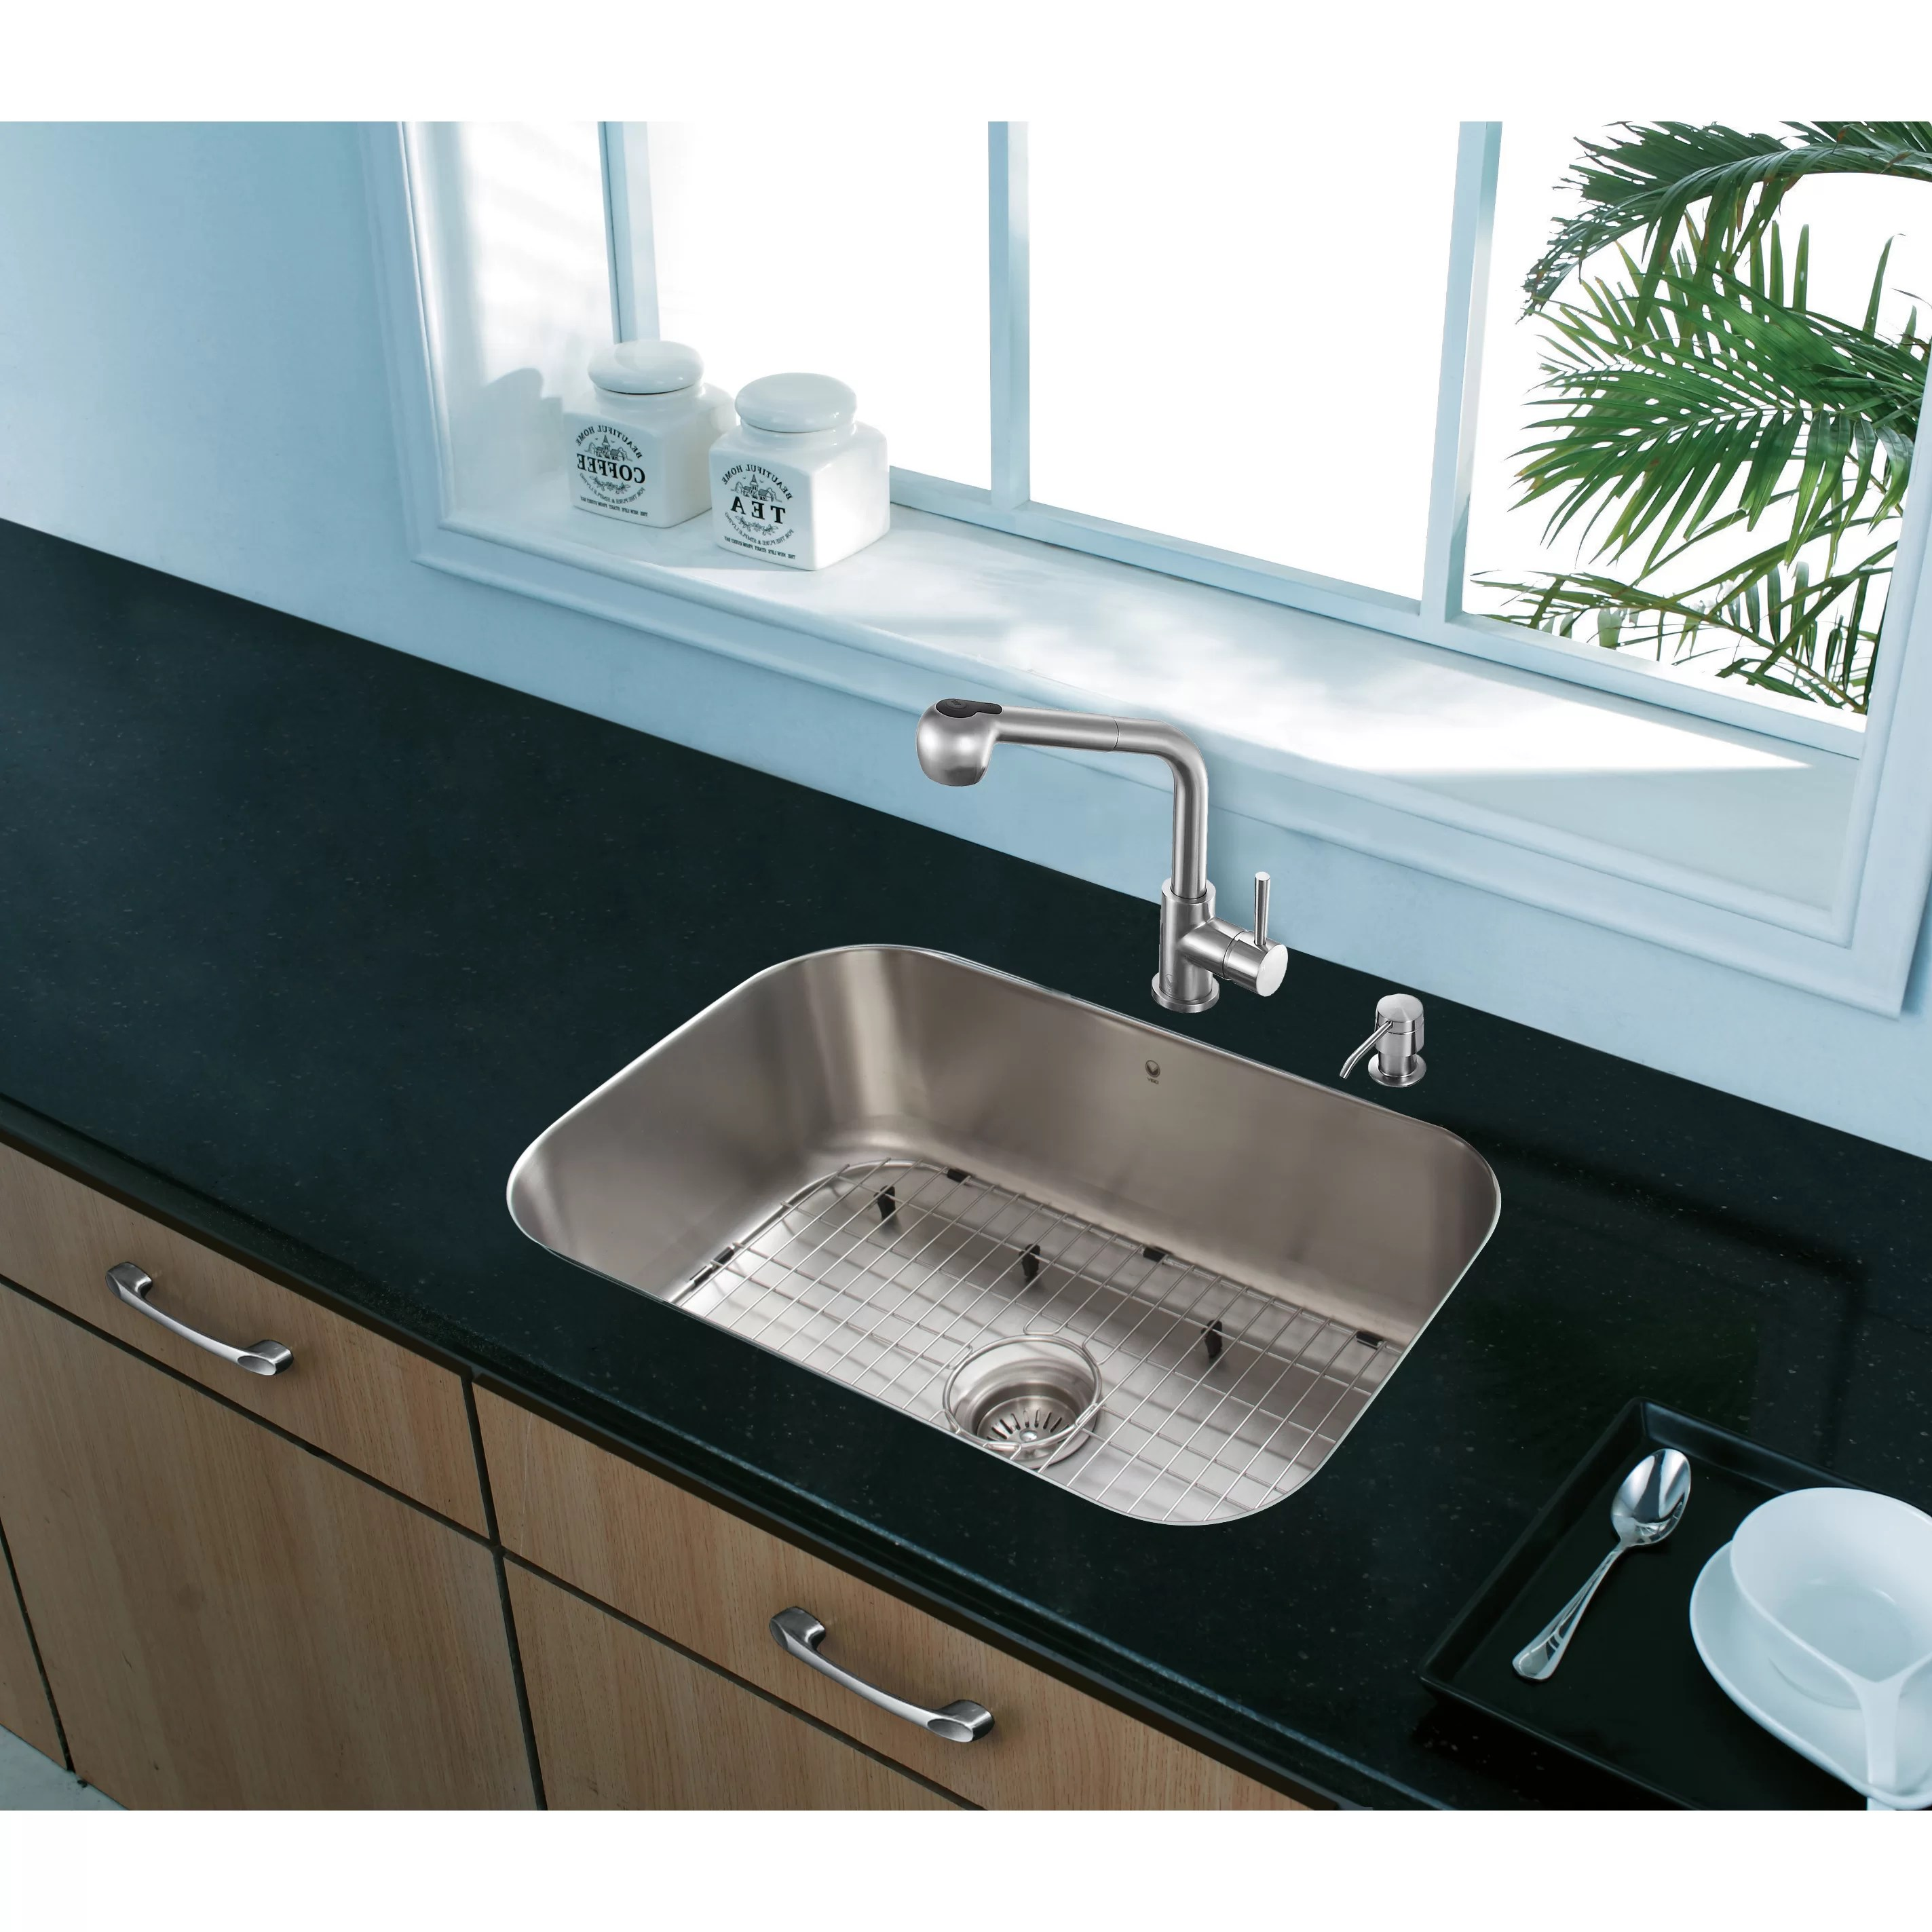 vigo kitchen sinks rectangle table with bench 23 inch undermount single bowl 18 gauge stainless